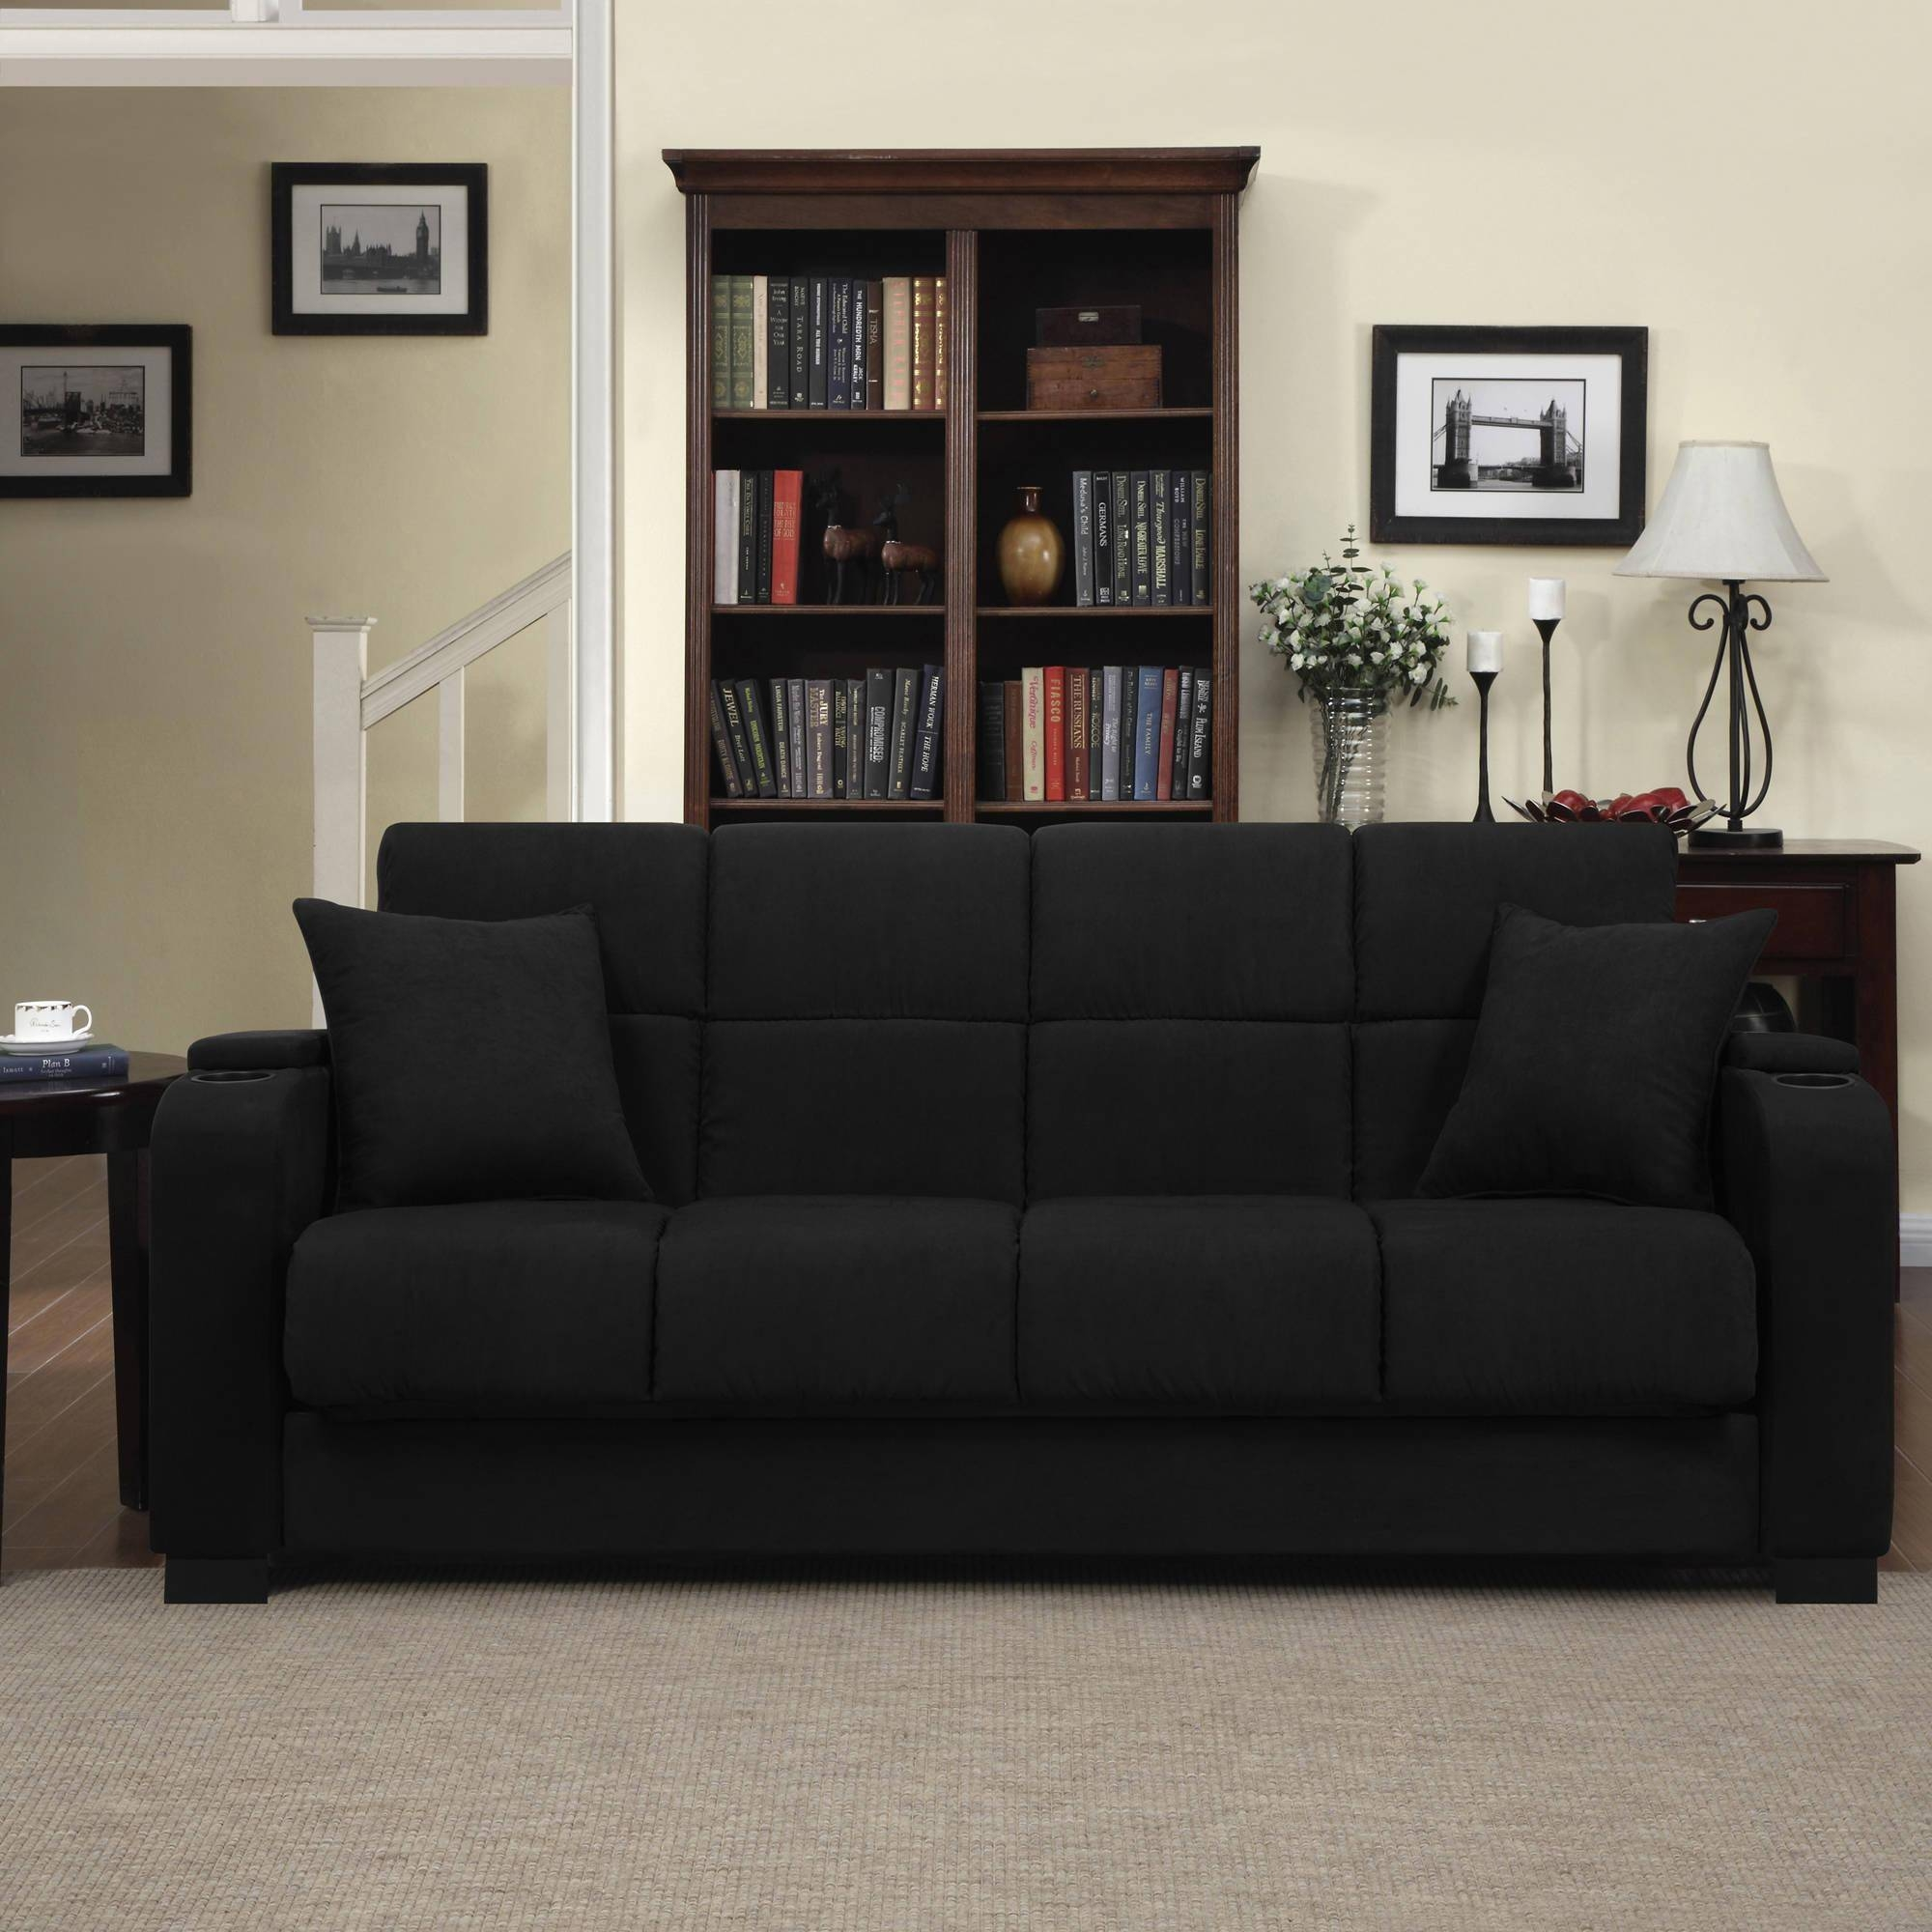 Furniture: Perfect Living Room With Sofa Slipcovers Walmart For regarding Black Slipcovers For Sofas (Image 13 of 30)